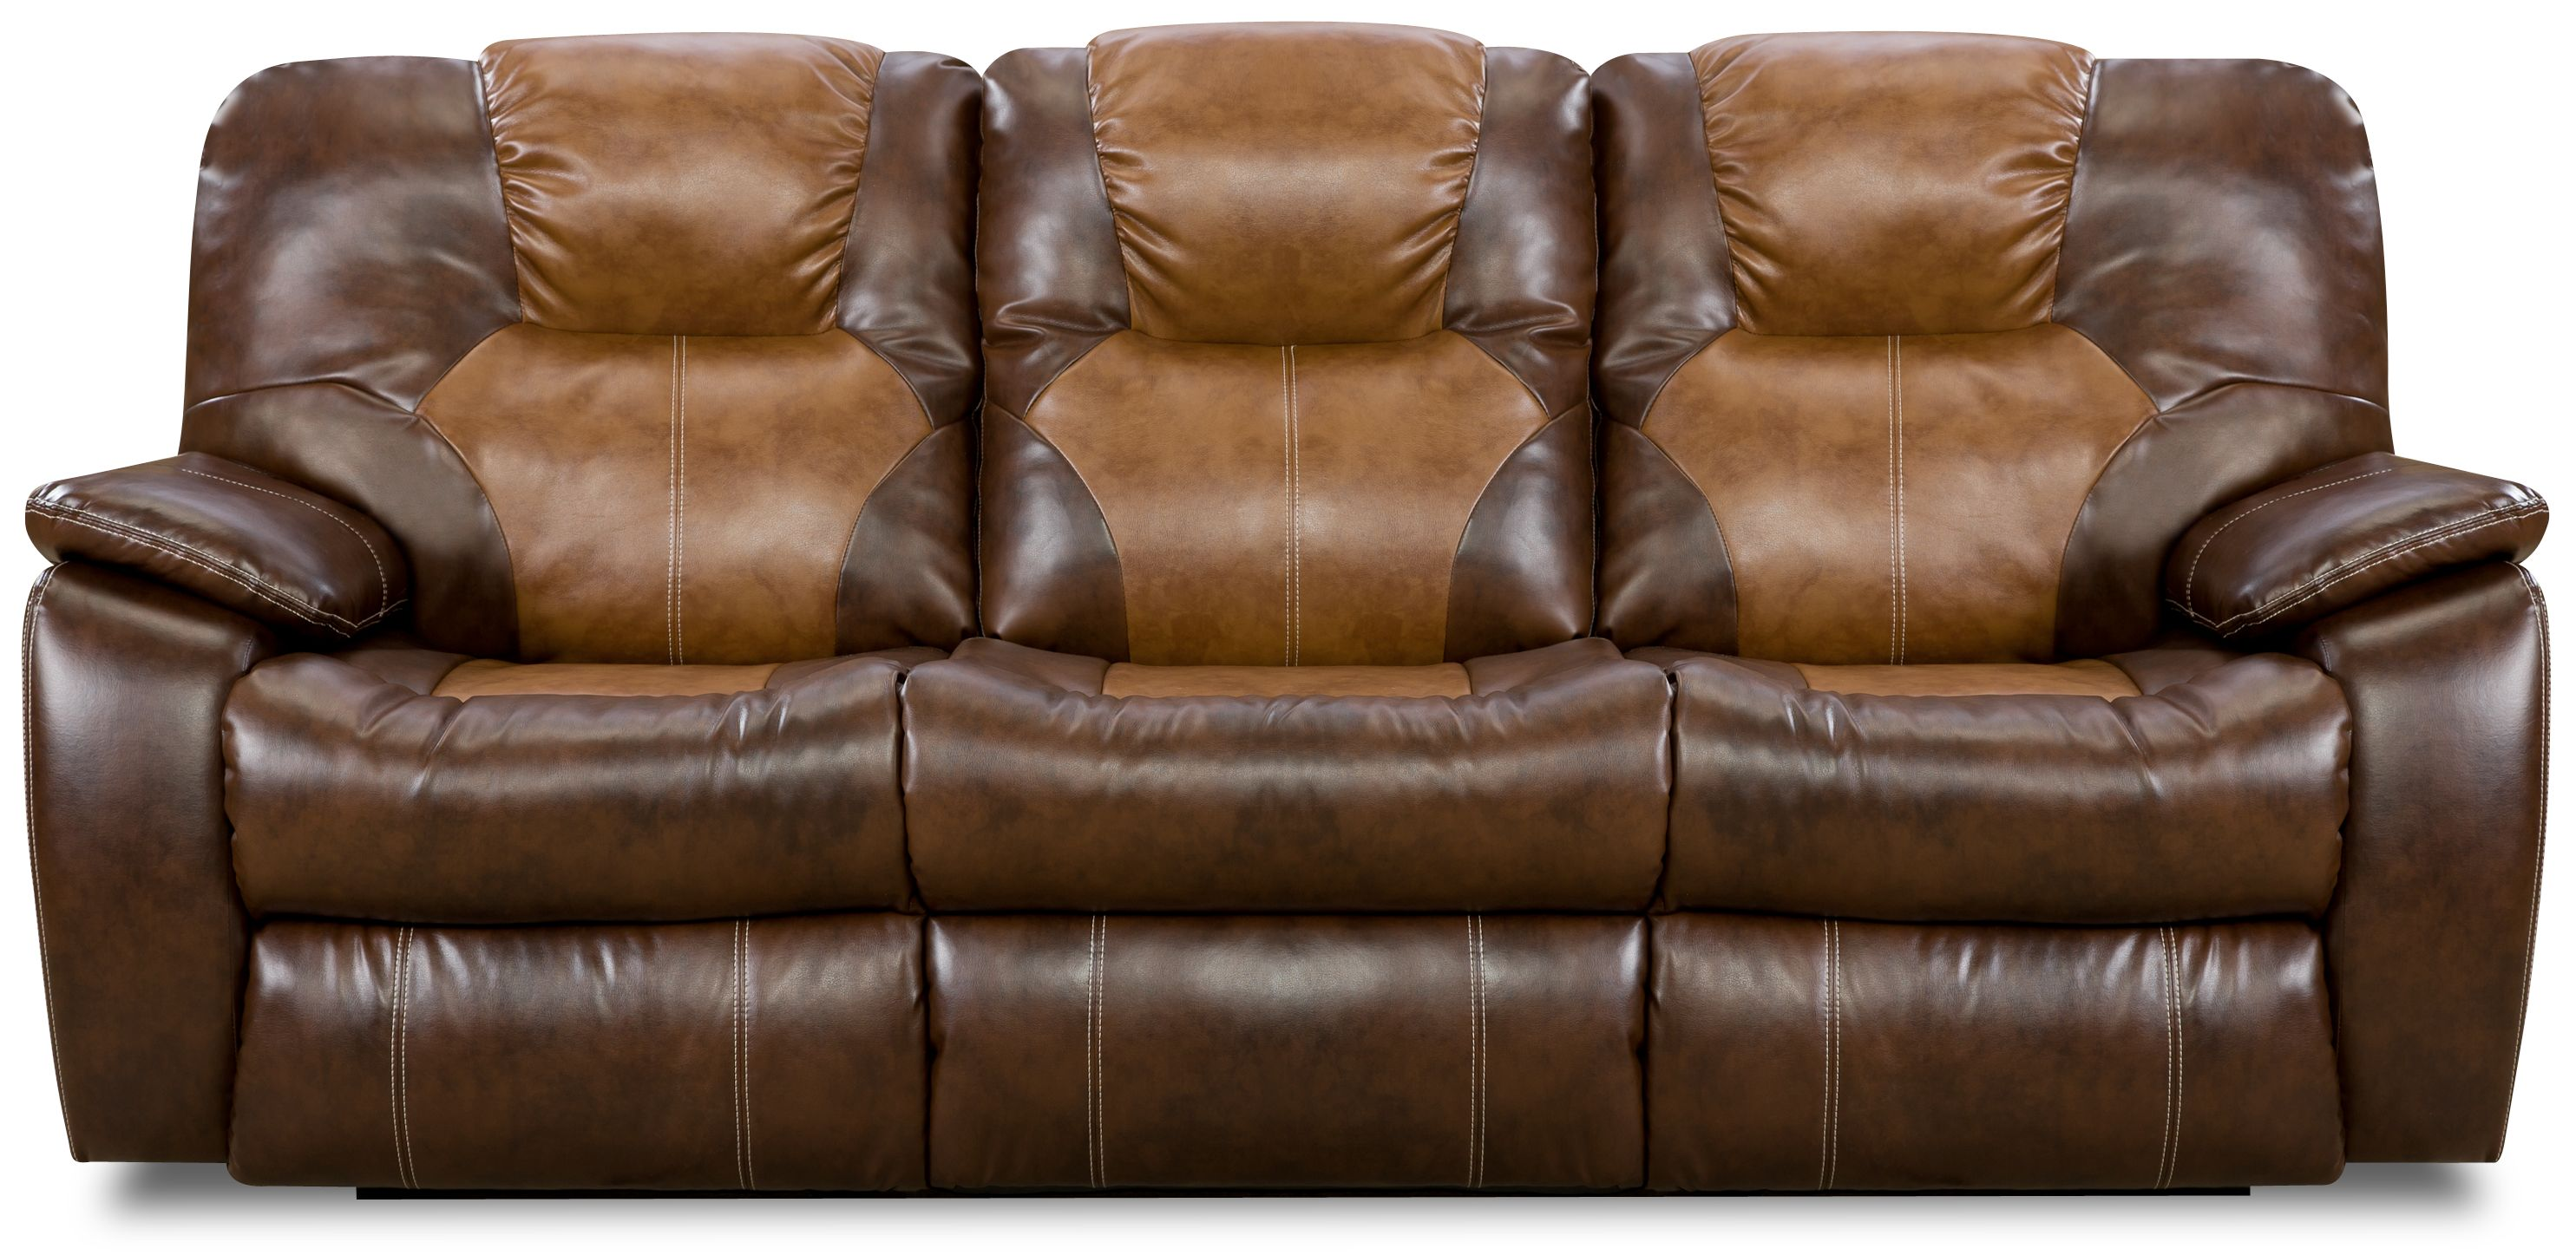 Southern Motion Avalon Double Reclining Sofa 838 31